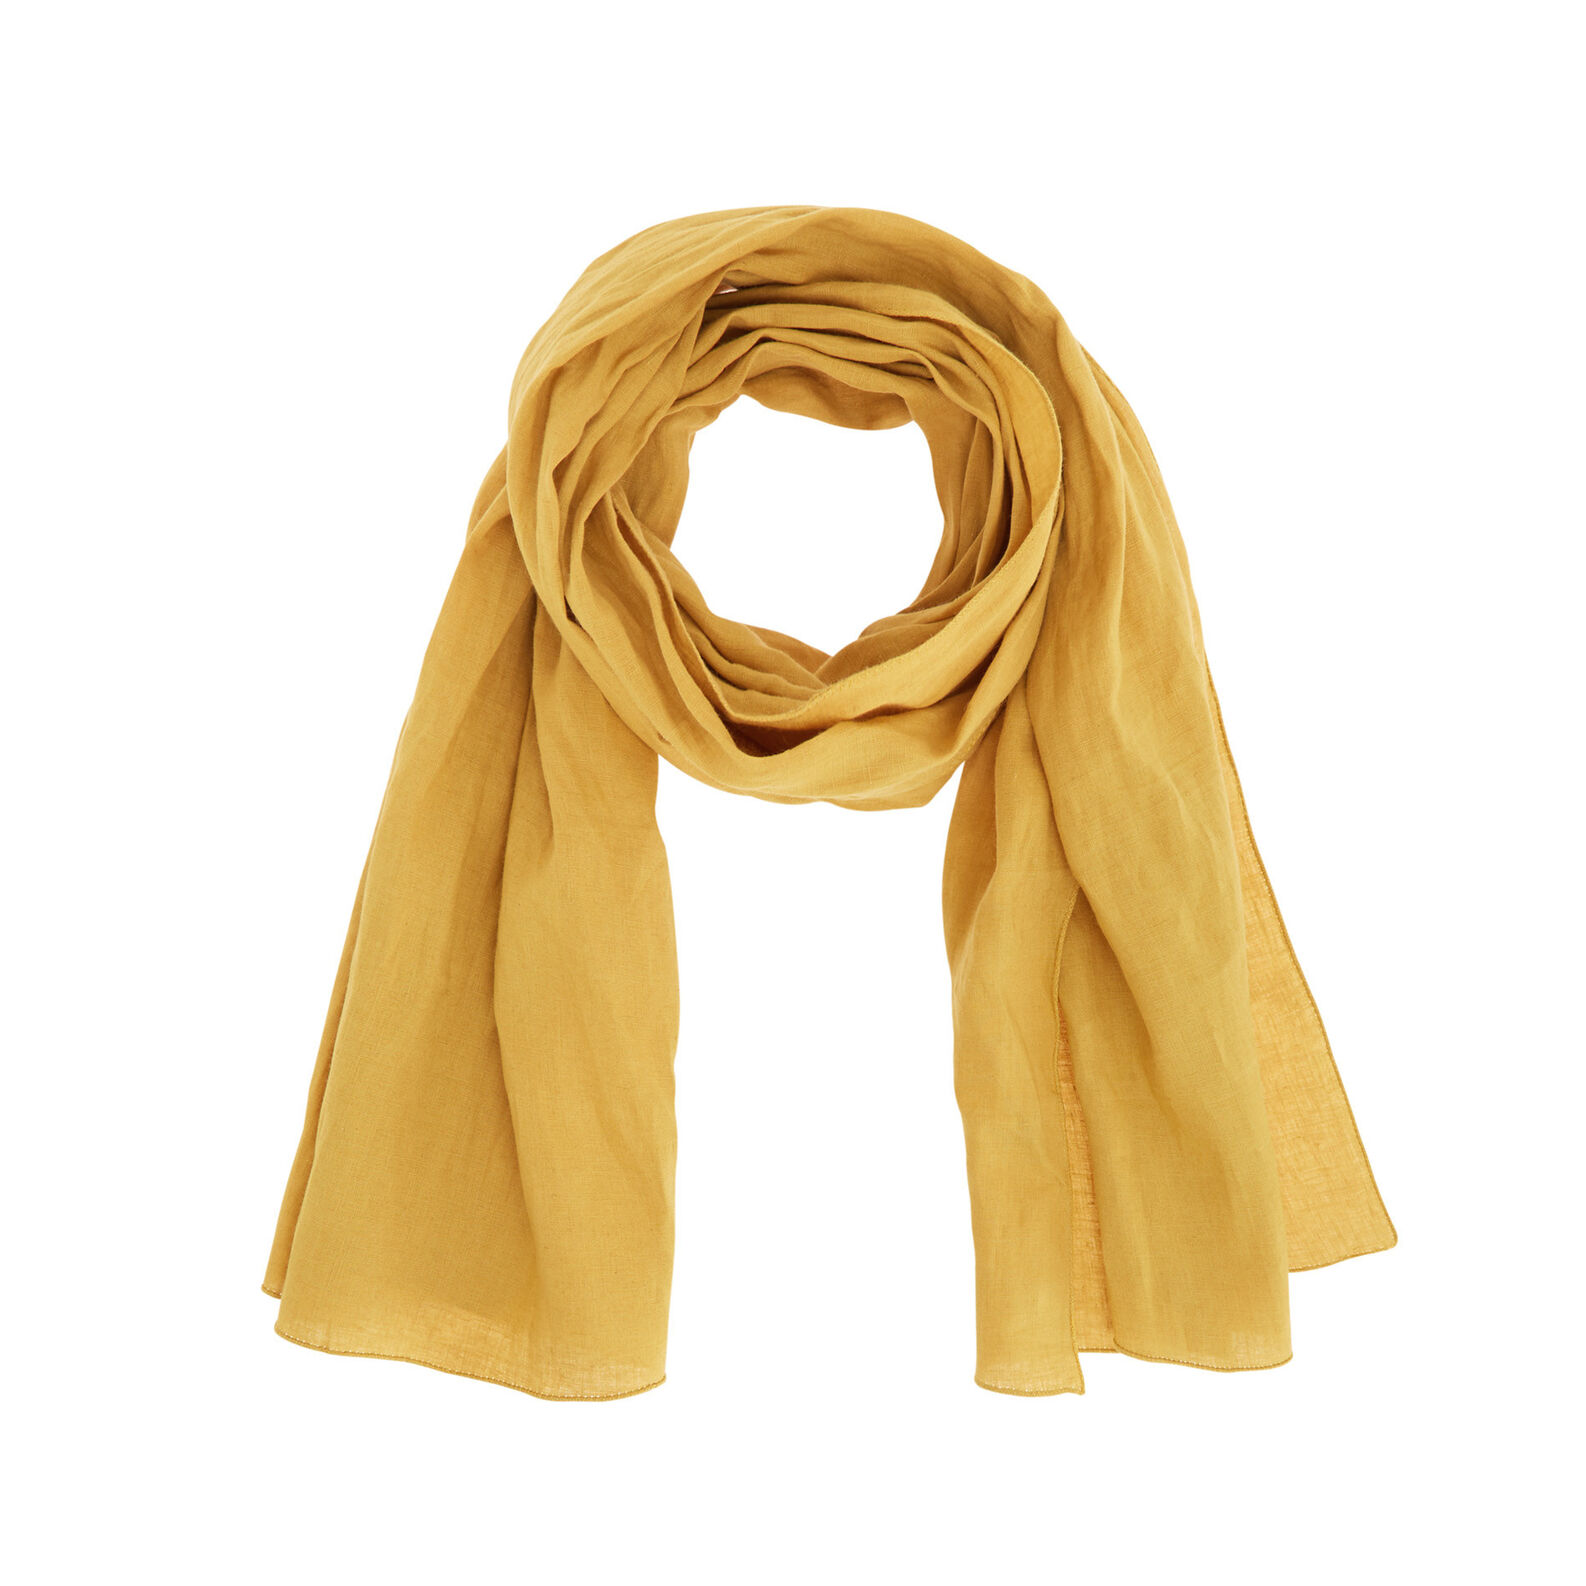 Solid colour 100% linen scarf.